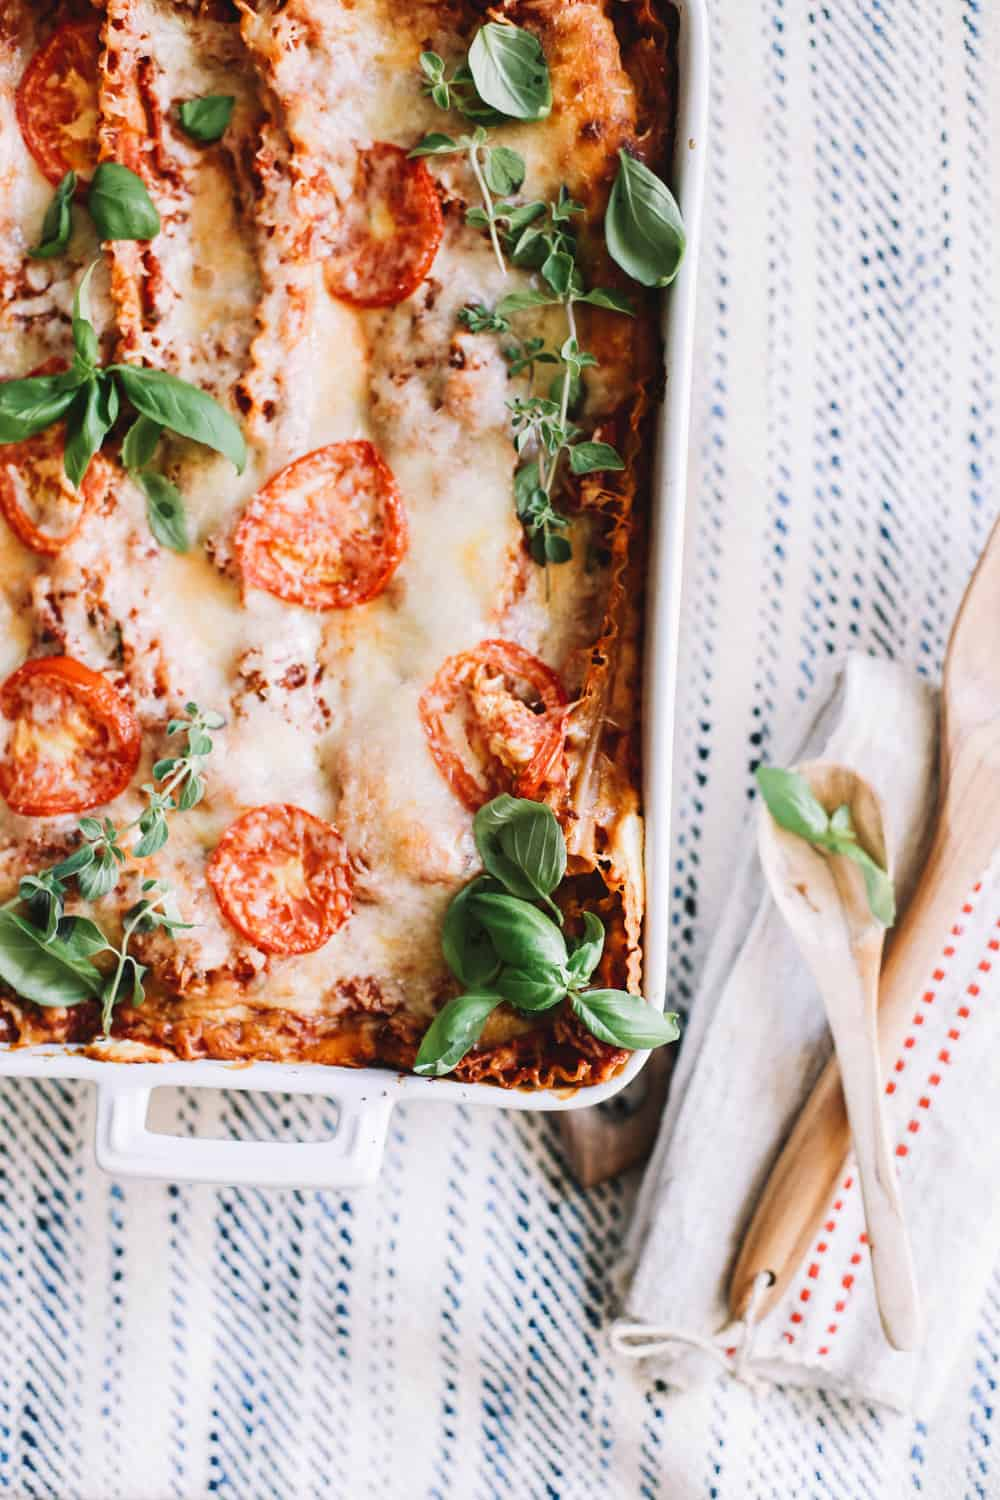 Baked homemade lasagna in a casserole dish